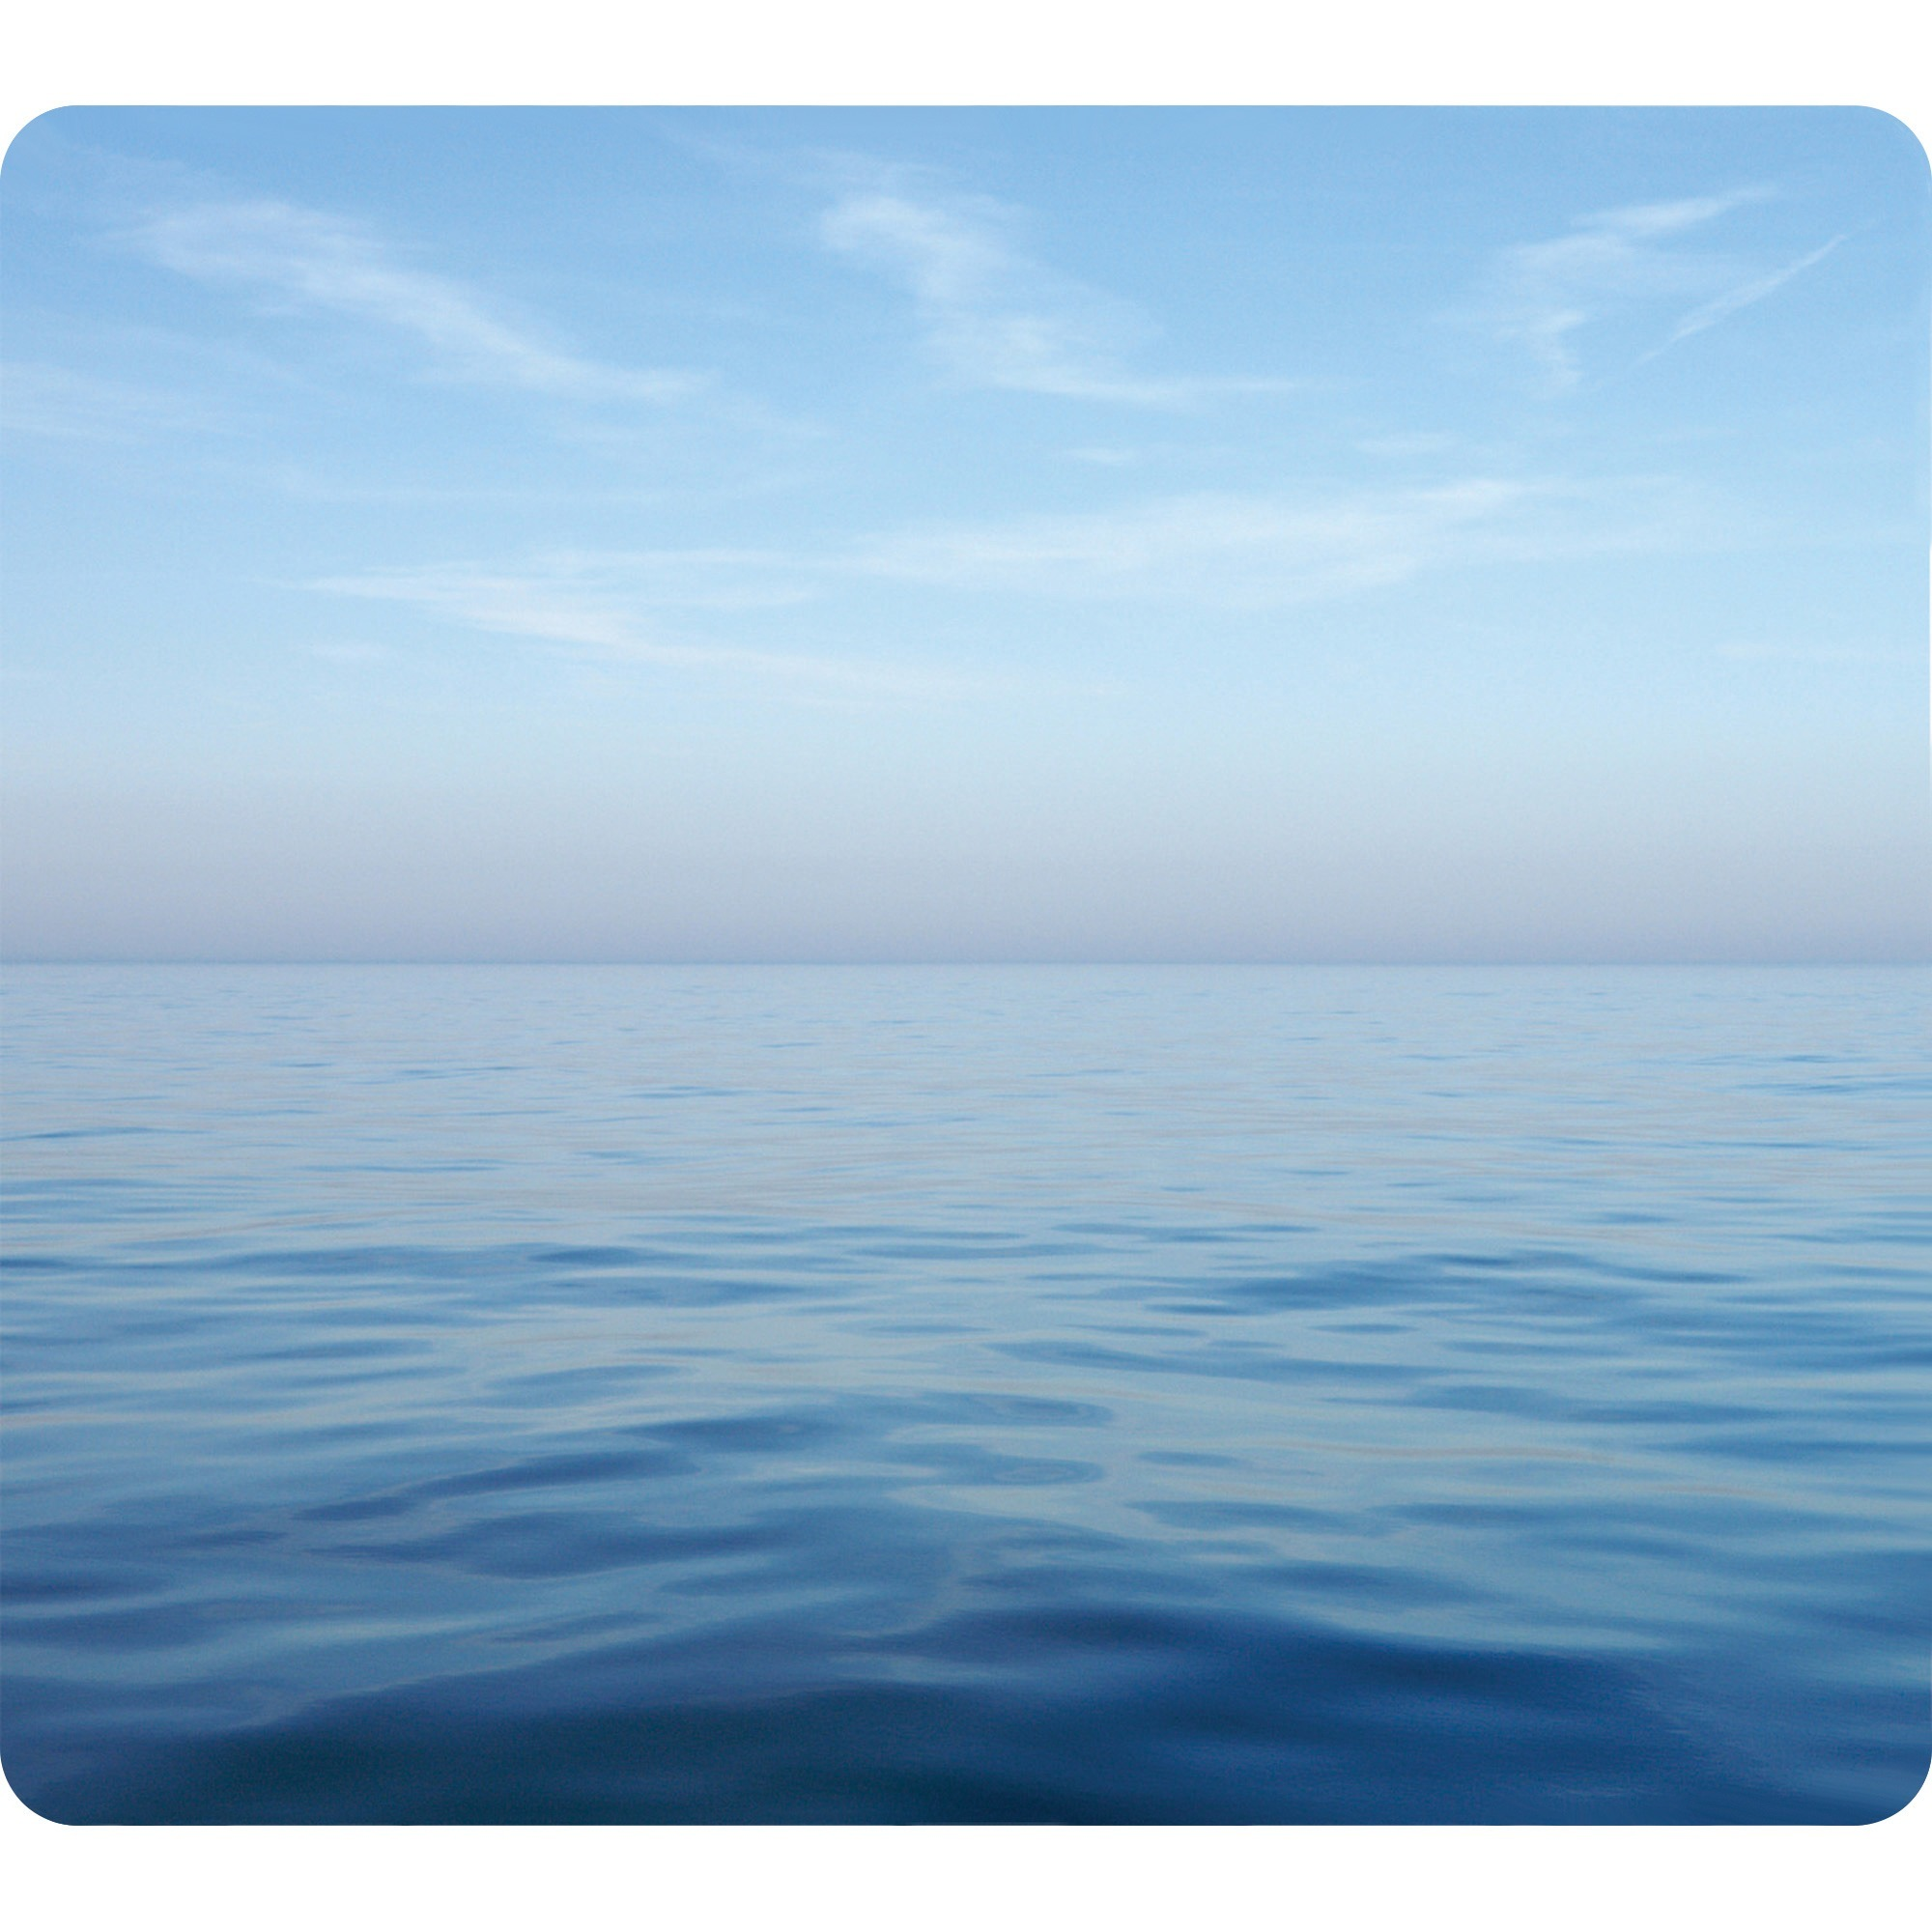 Fellowes, FEL5903901, Recycled Mouse Pad - Blue Ocean, 1, Multicolor